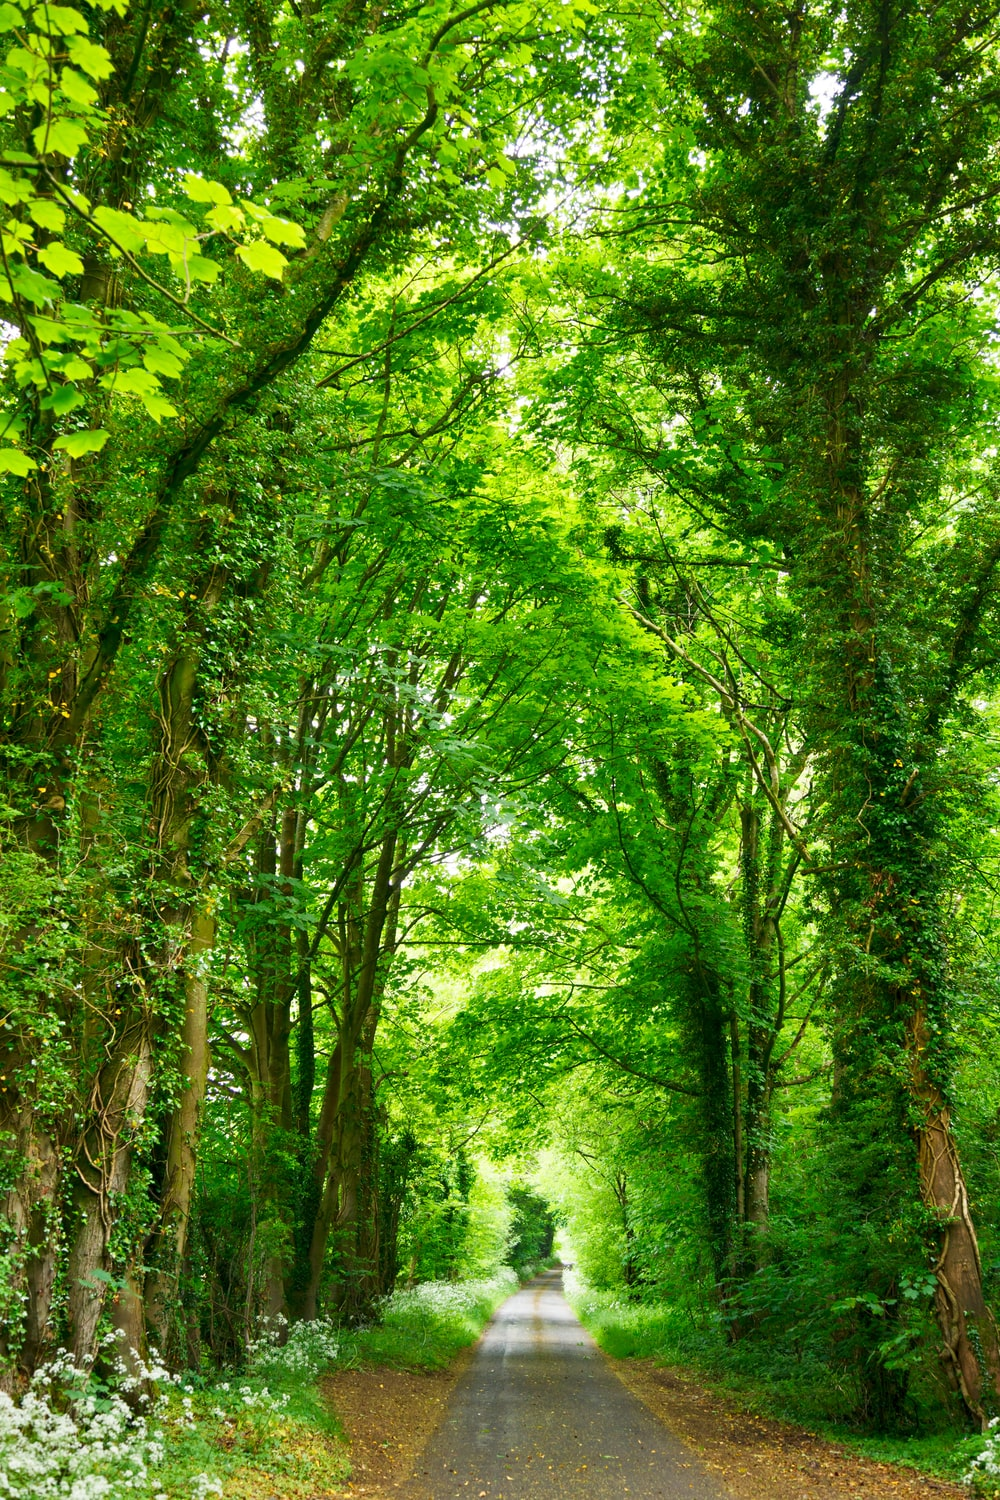 A narrow road lined with fresh green trees